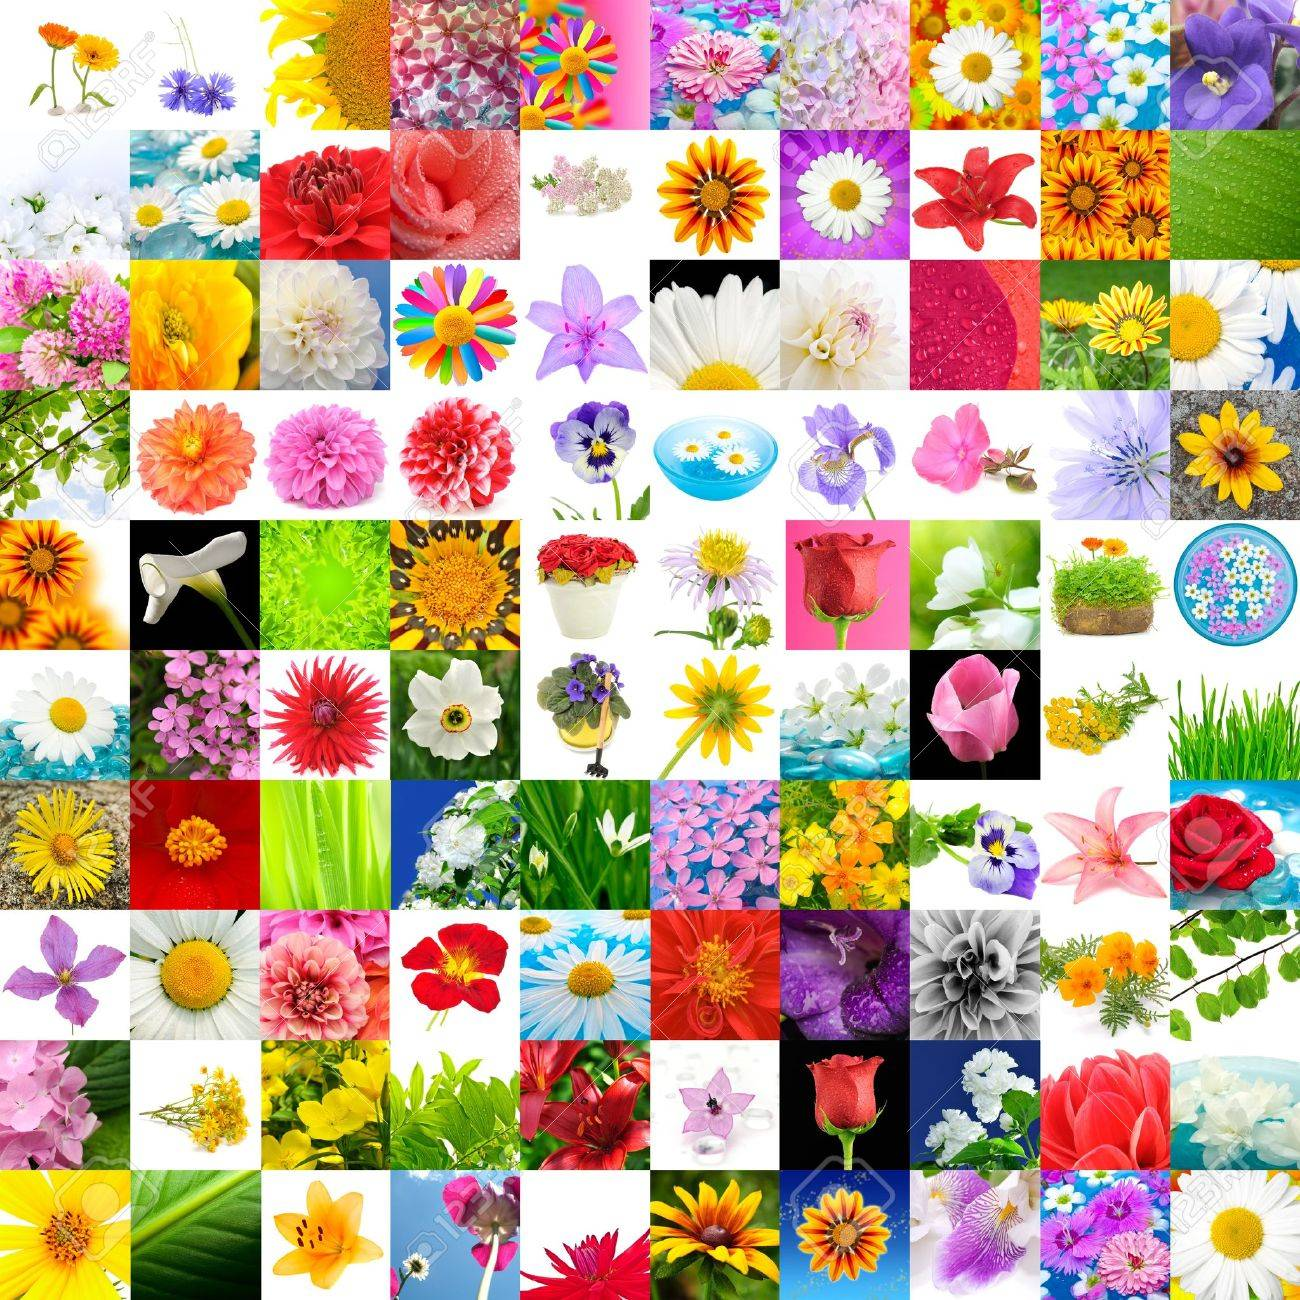 big collection of flowers set of 100 images stock photo picture